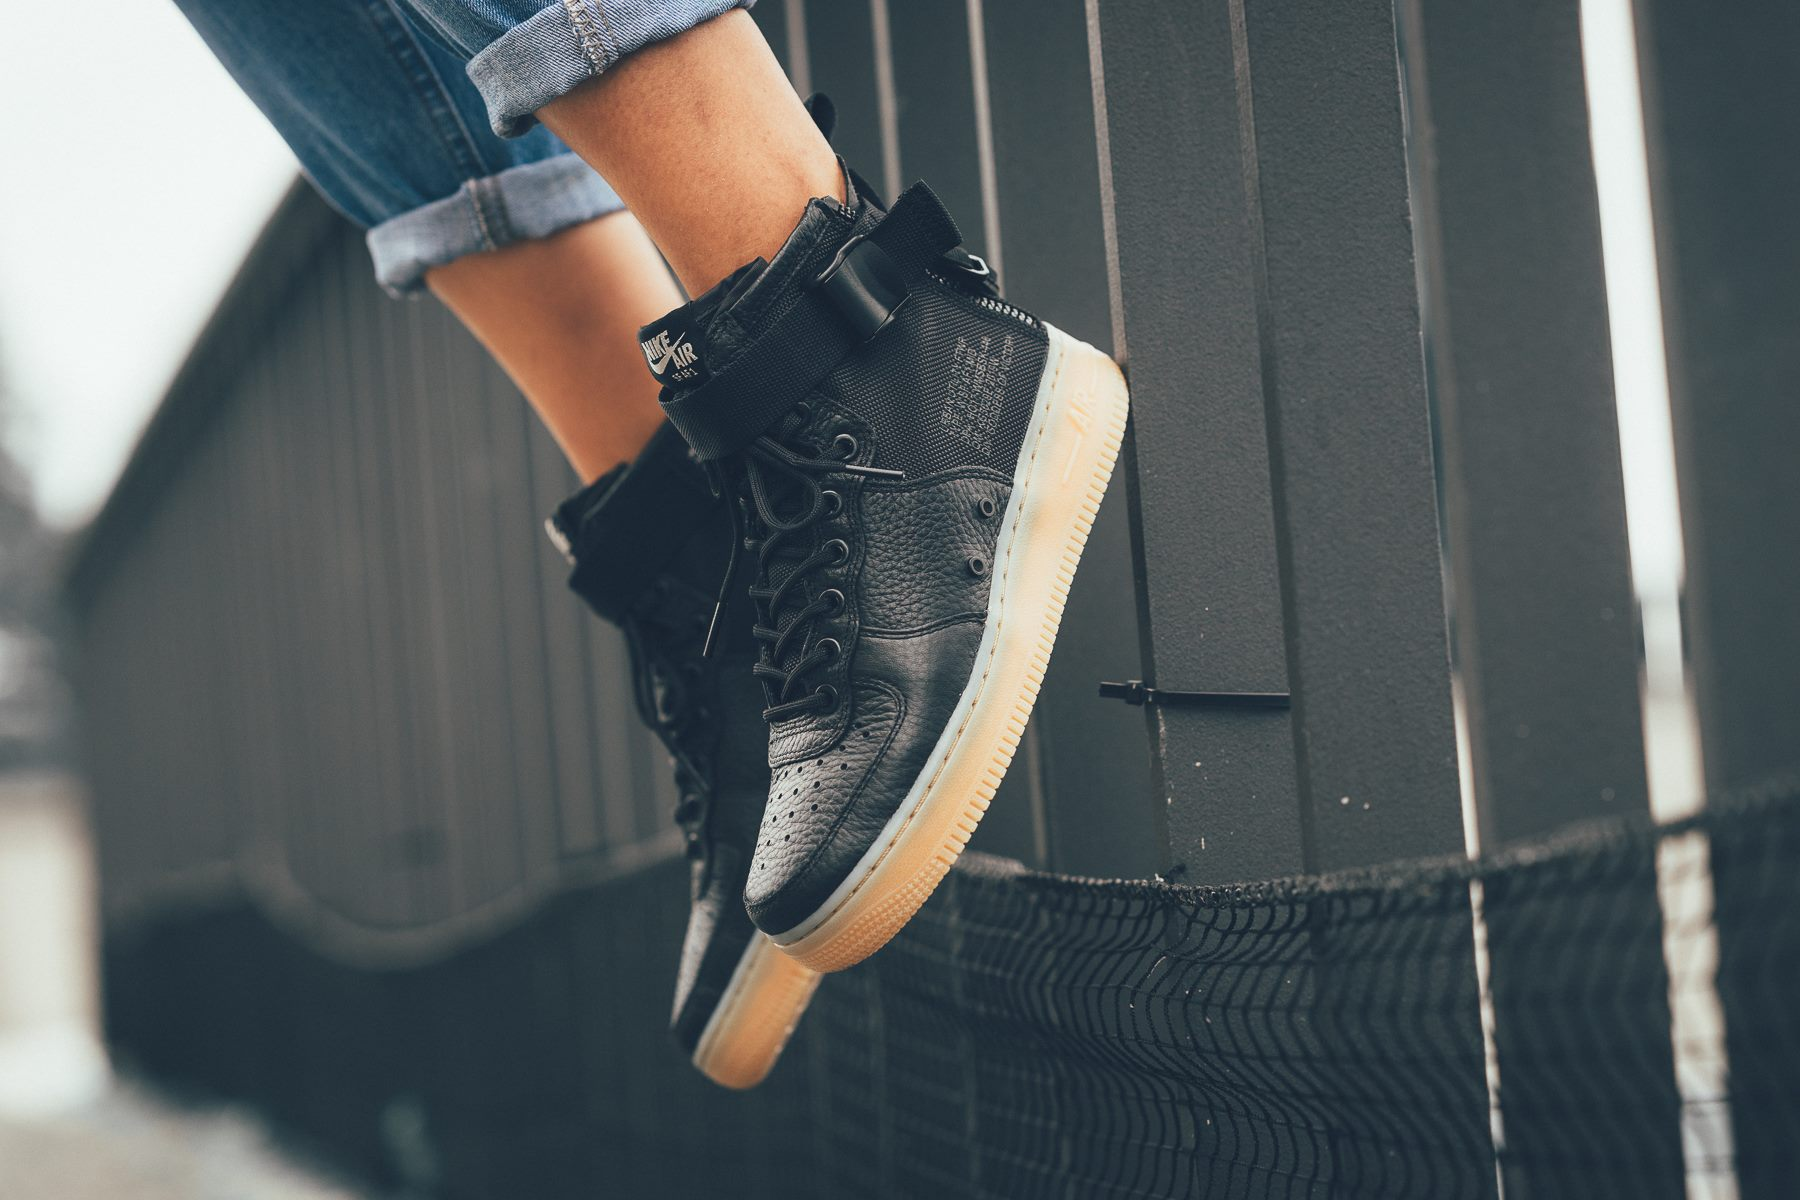 d8a8a460203b4f Nike SF-AF1 Mid Black Gum - Air 23 - Air Jordan Release Dates ...